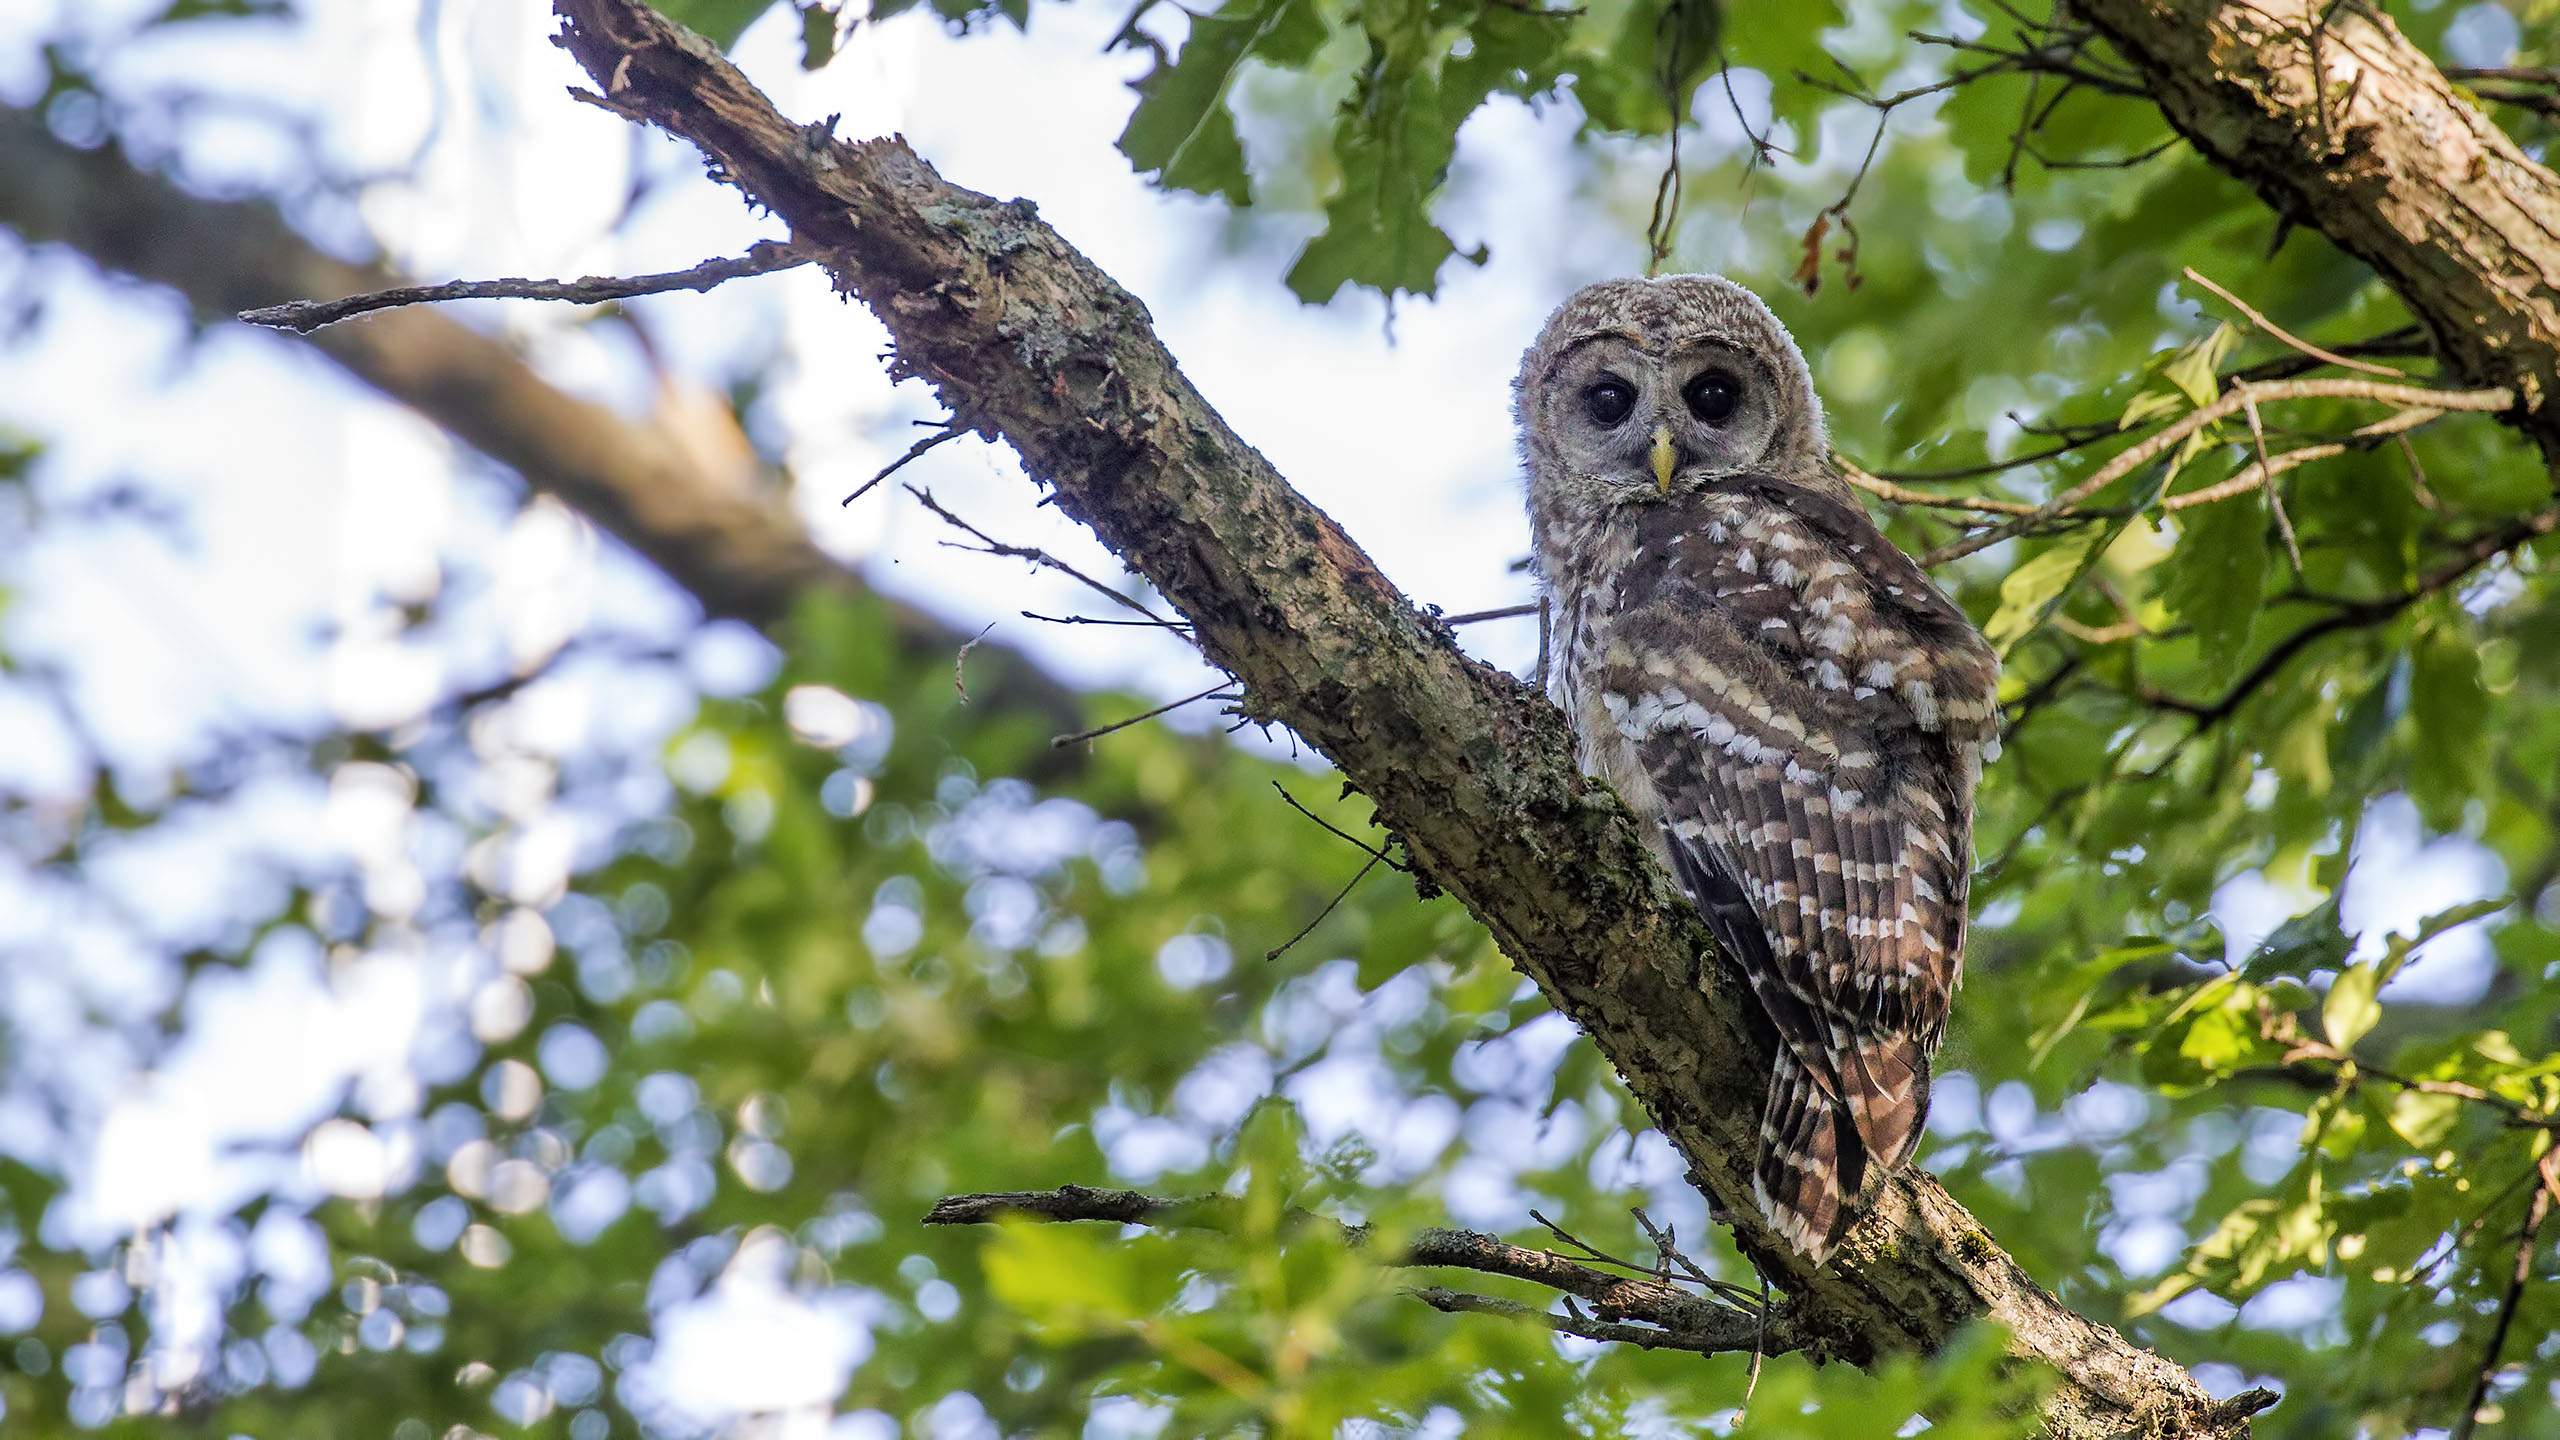 Another young Barred Owl sitting out enjoying the day.